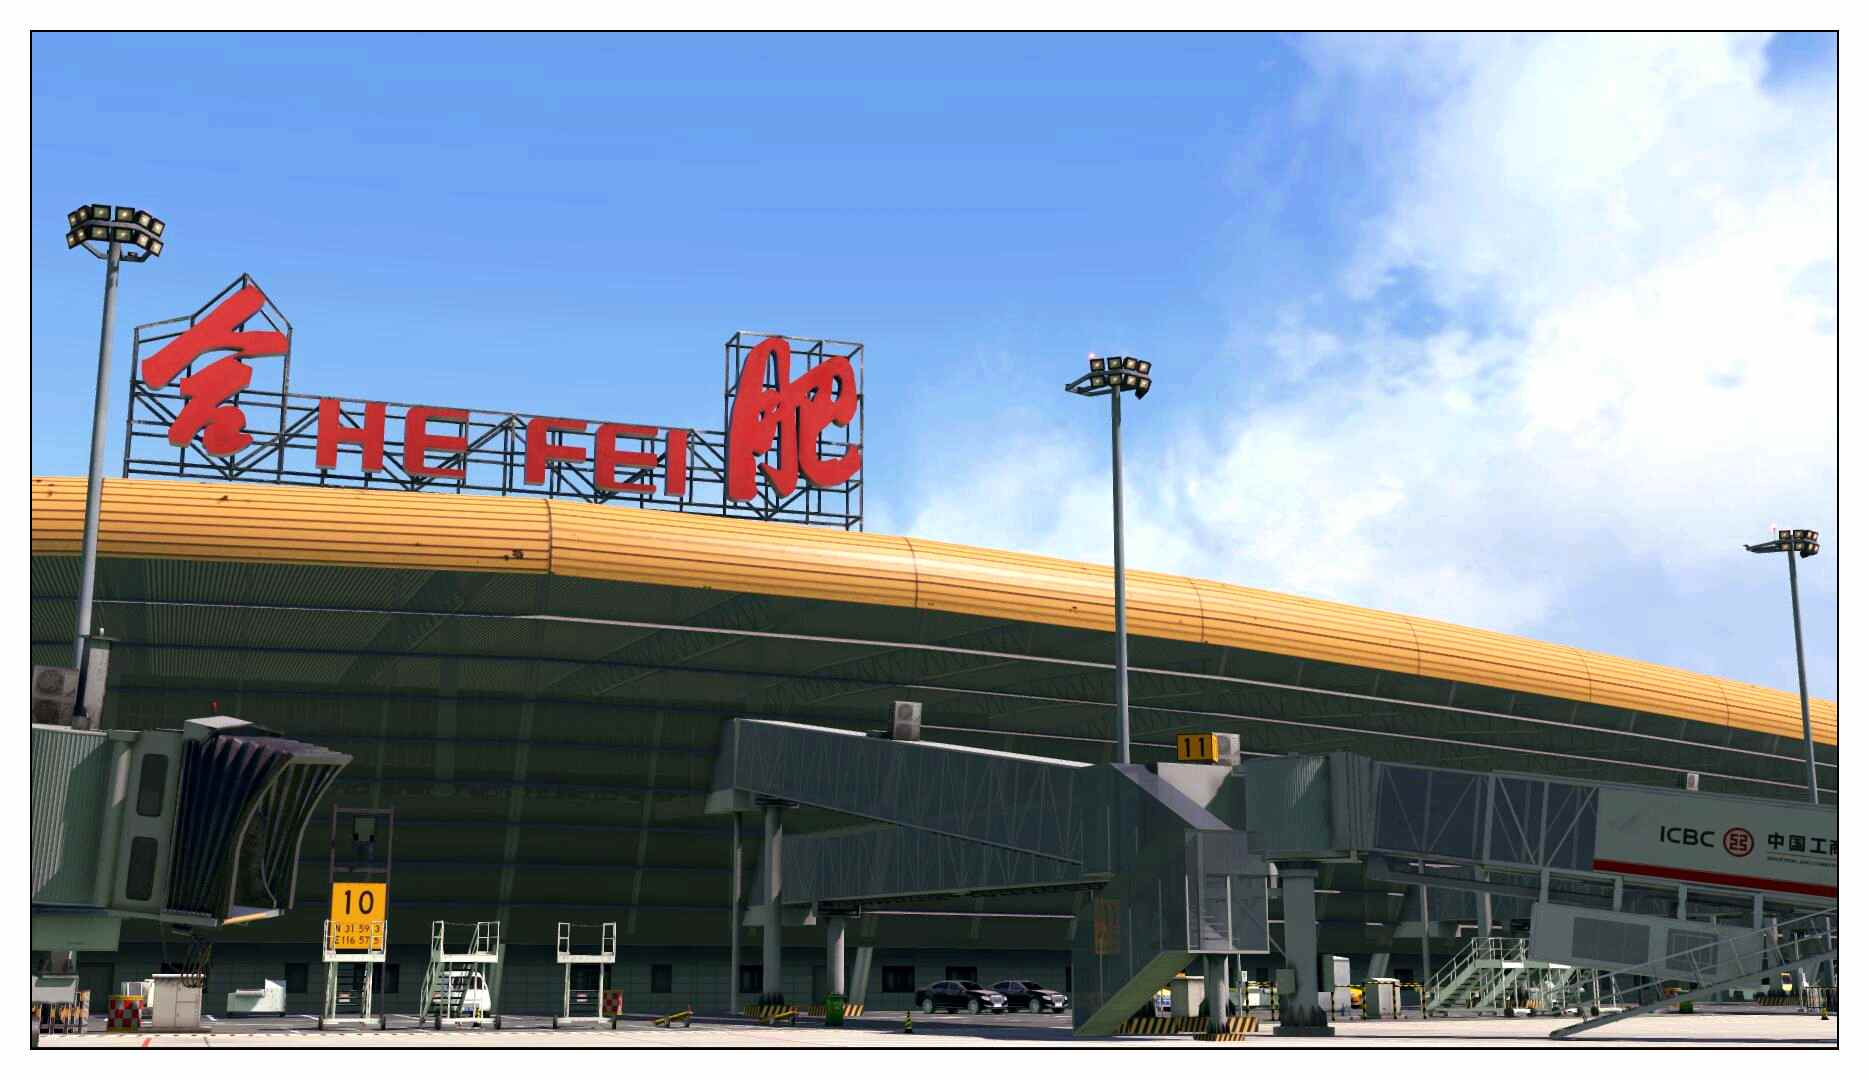 ZSOF - Hefei Xinqiao International Airport